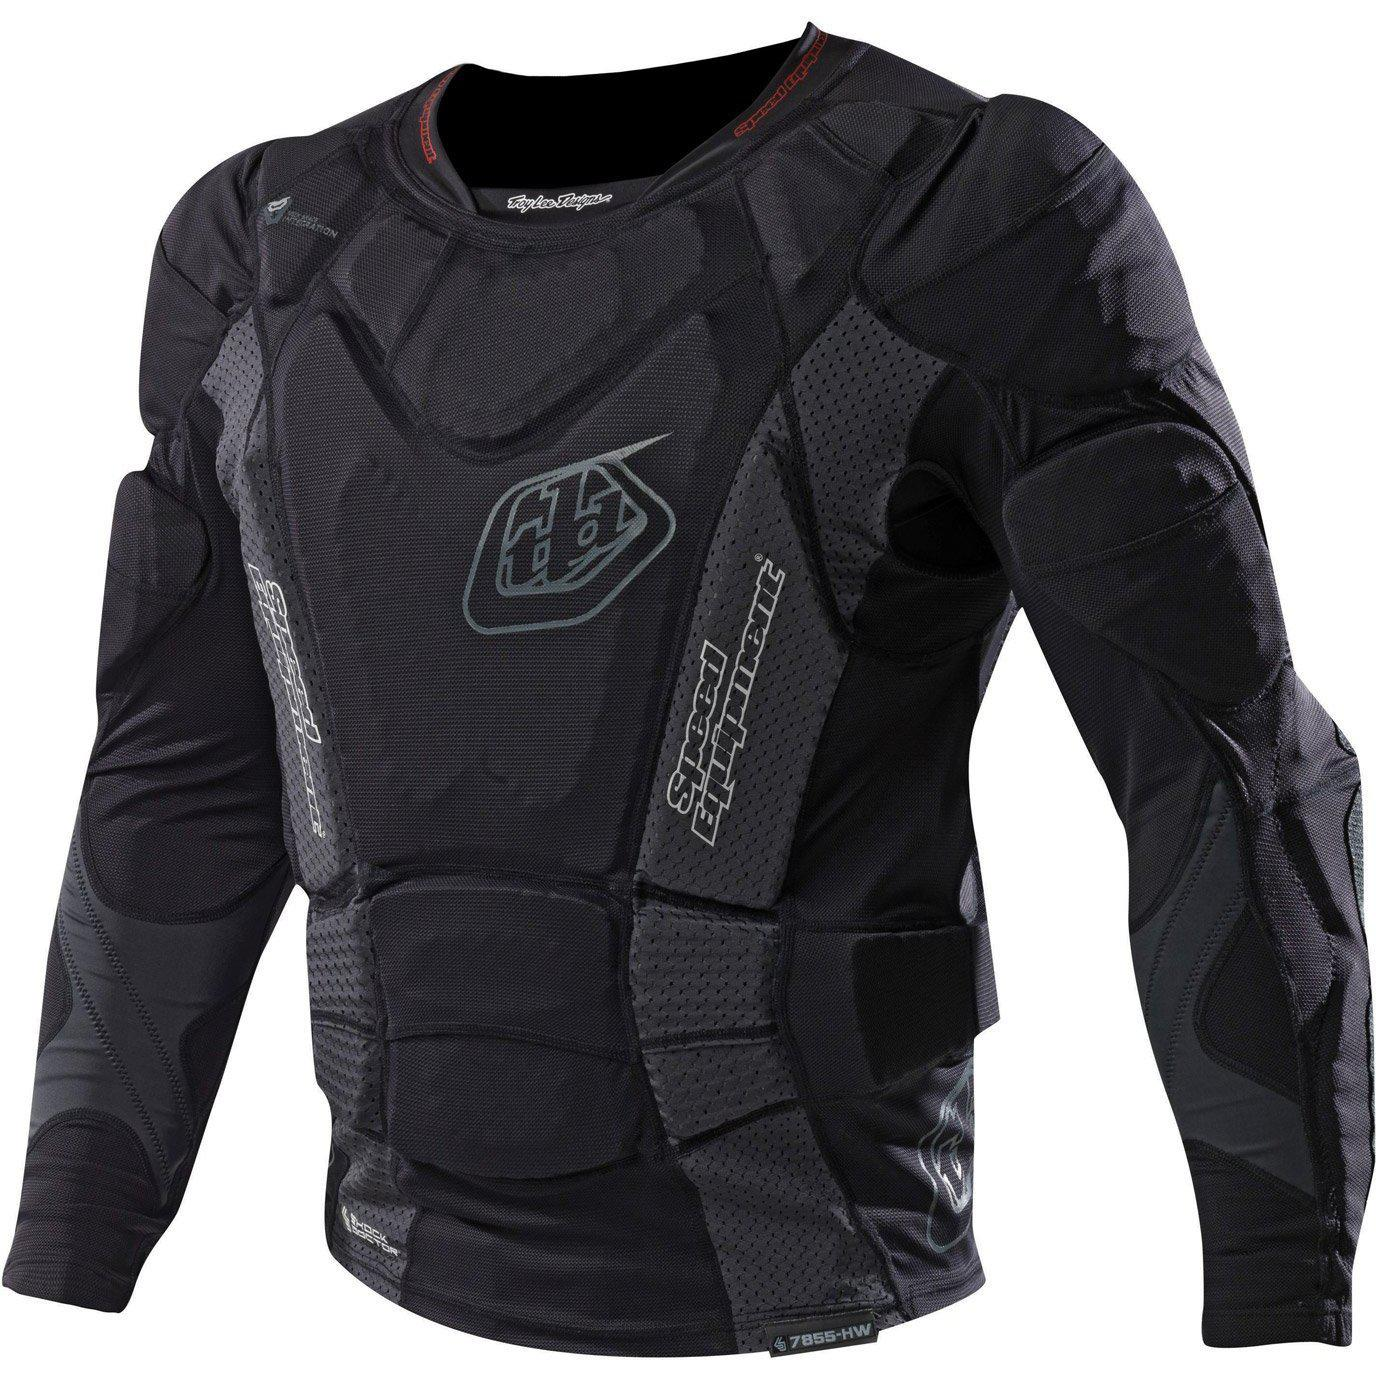 Troy Lee Designs-Troy Lee Designs 7855 Upper Protection Long Sleeve Shirt-BLACK-XL-TLD510003208-saddleback-elite-performance-cycling